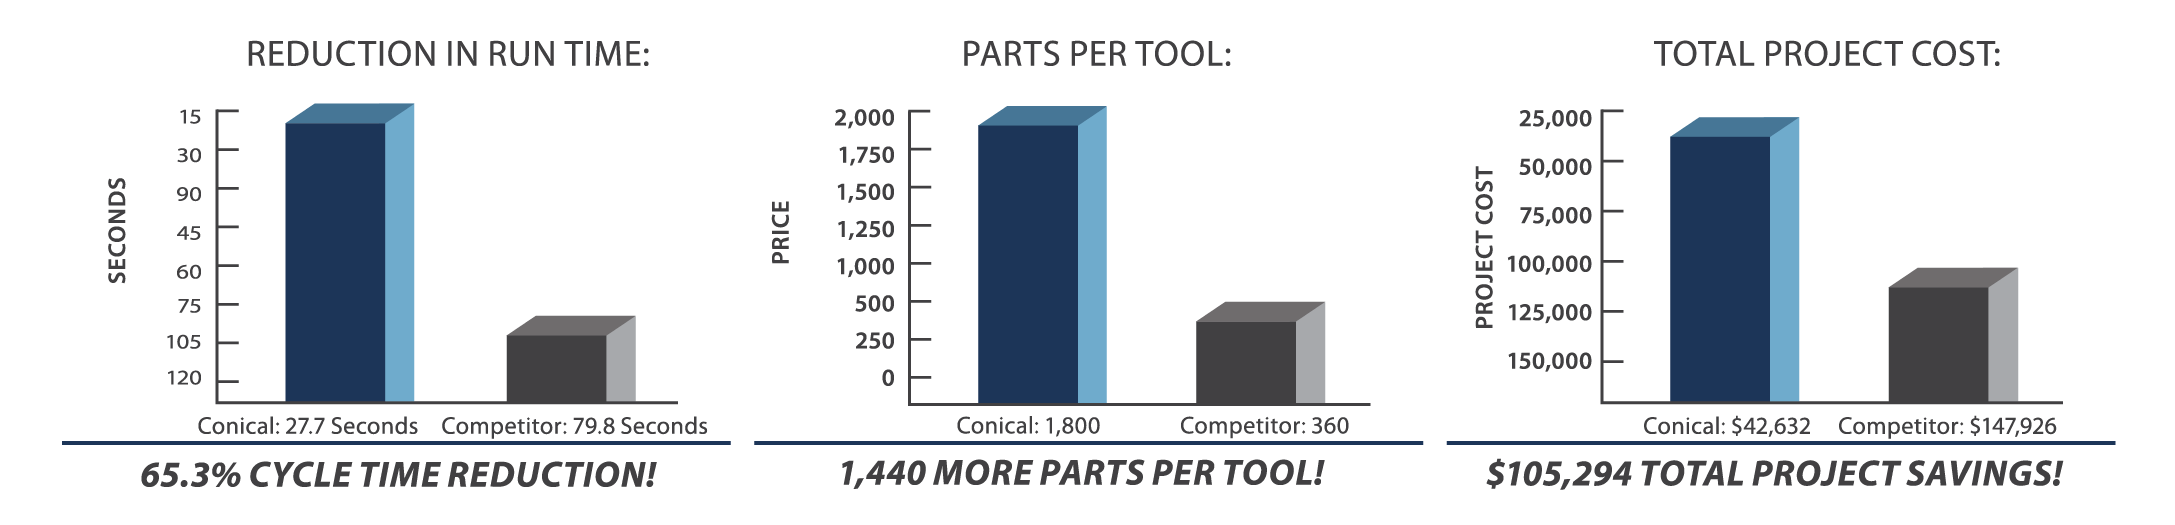 Run Time Parts Per Tool Cost Graph